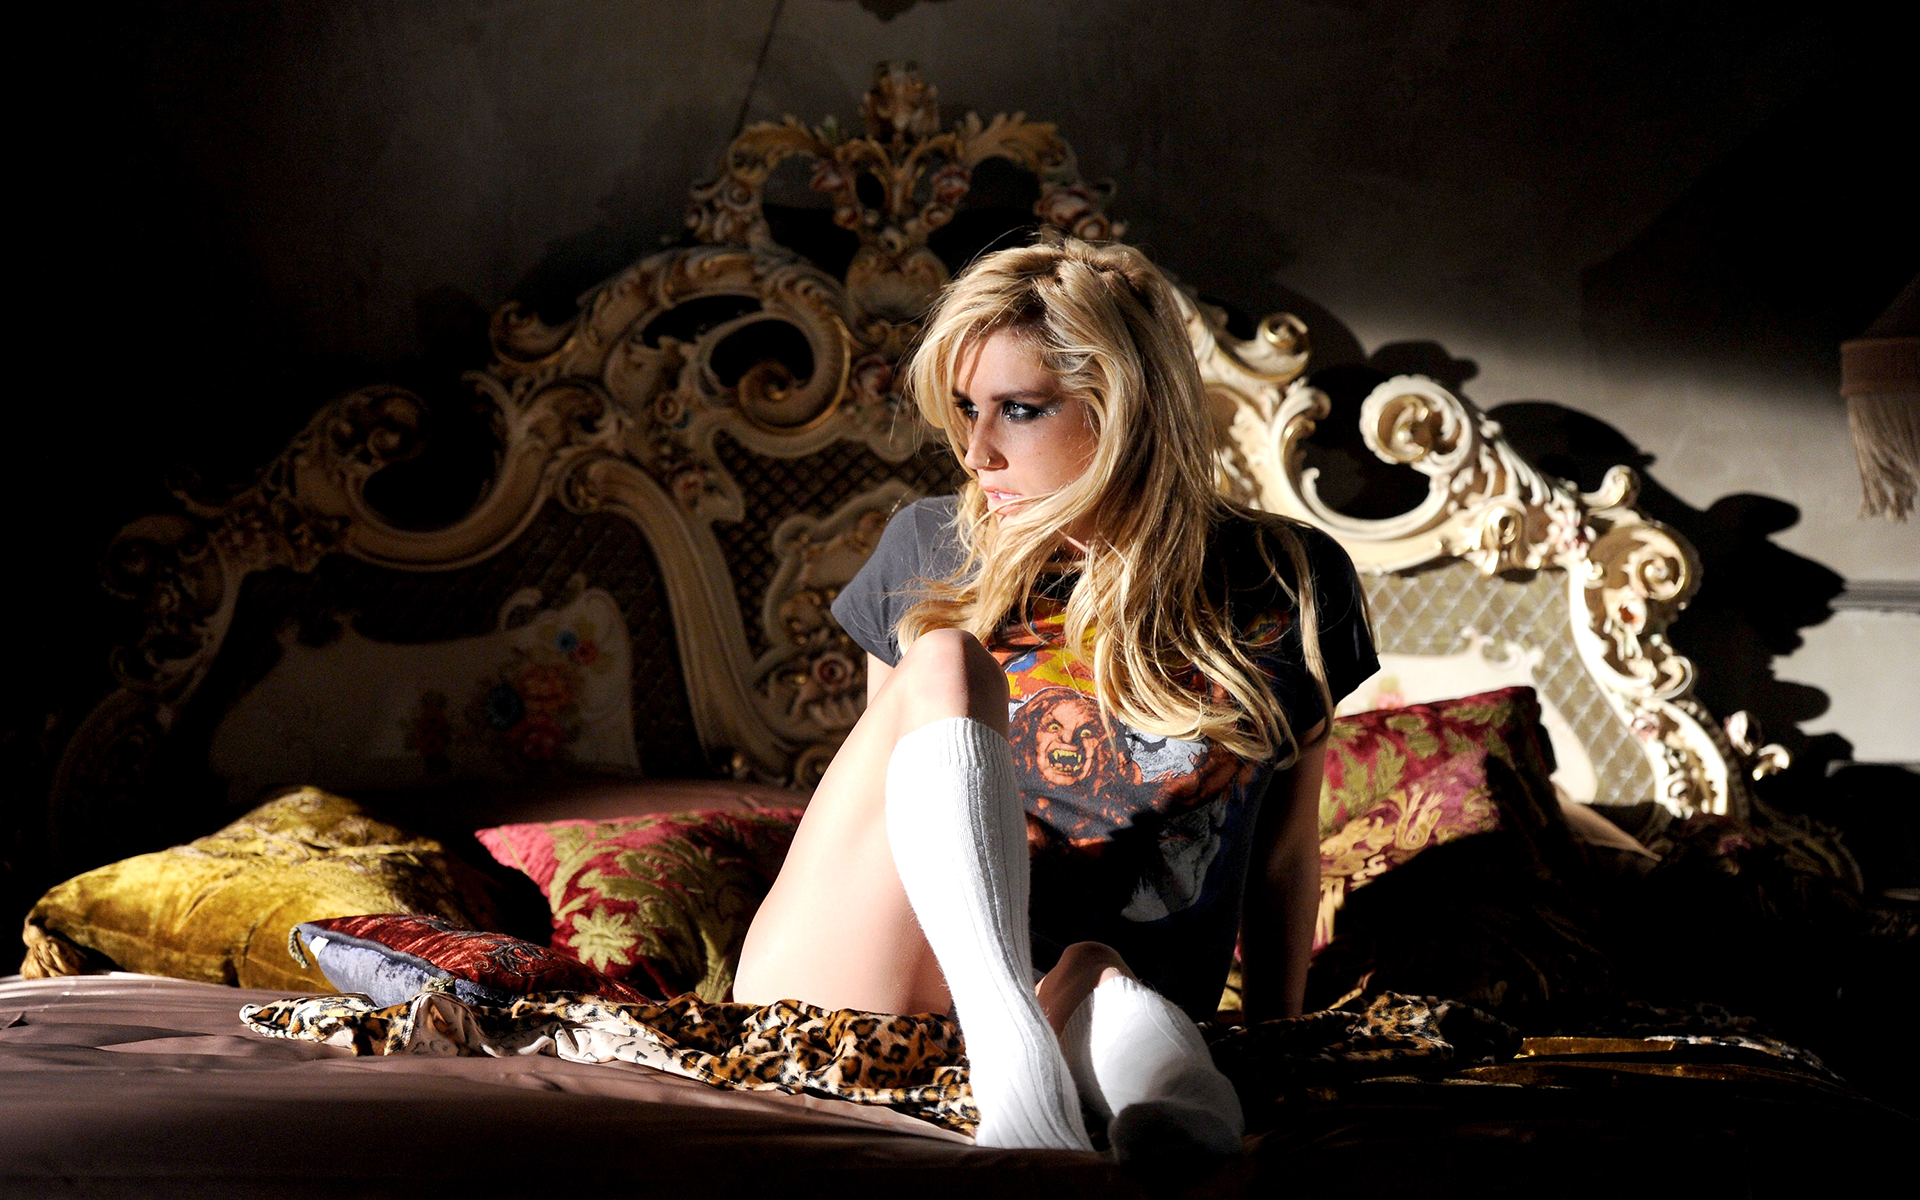 Kesha blondes blondes women girl girls f wallpaper 1920x1200 87527 1920x1200